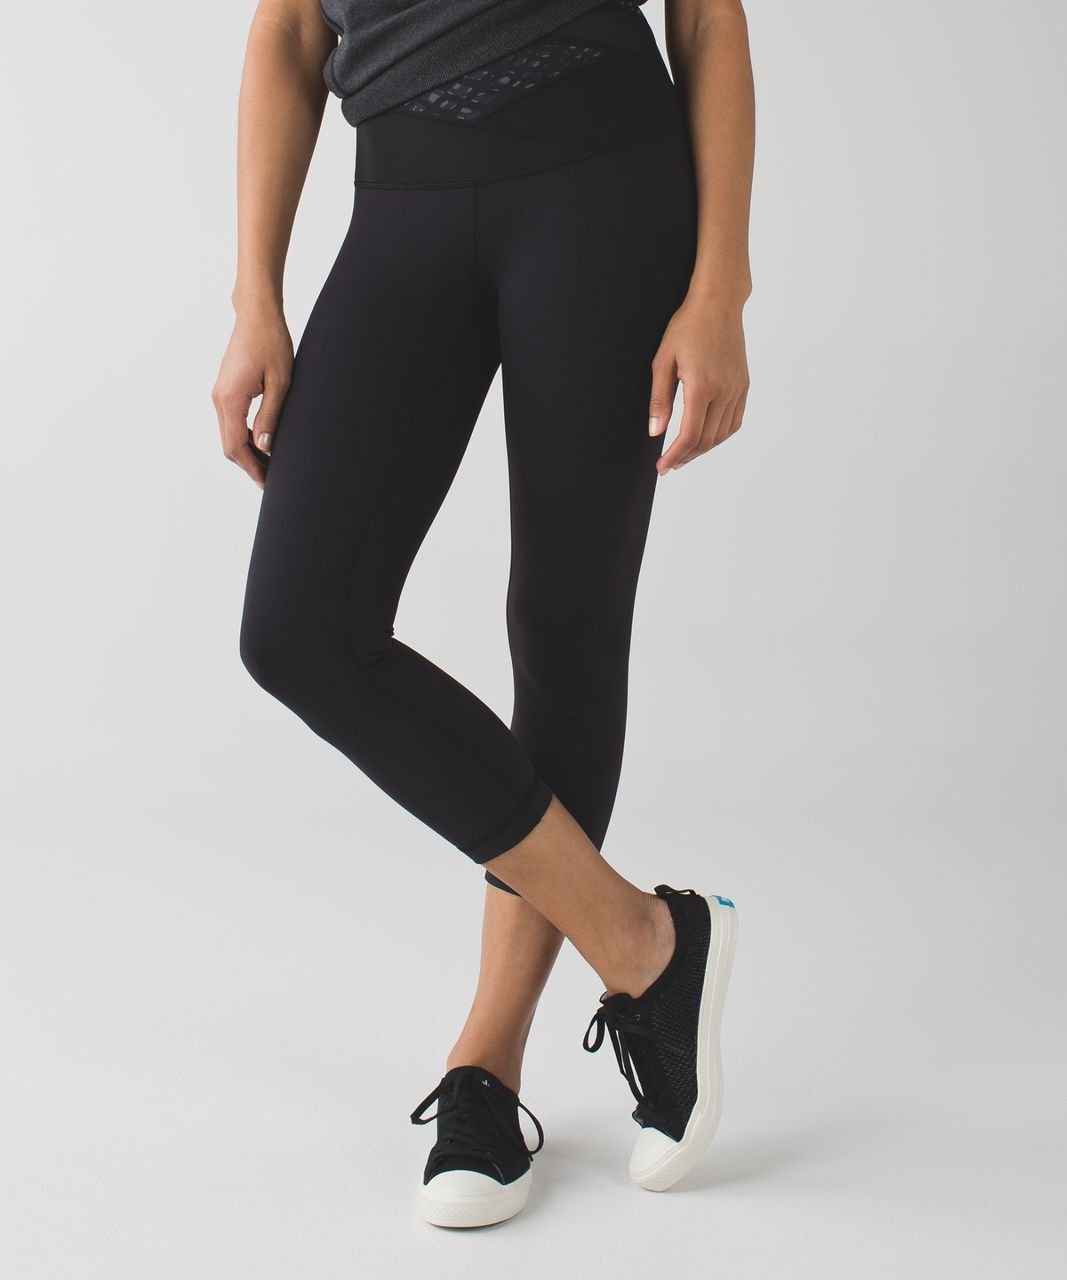 Lululemon Wunder Under Crop (Hi-Rise) *Full-On Luon - Black / Simply Lace Play Dark Slate Black / Millie Mesh Dark Slate Black